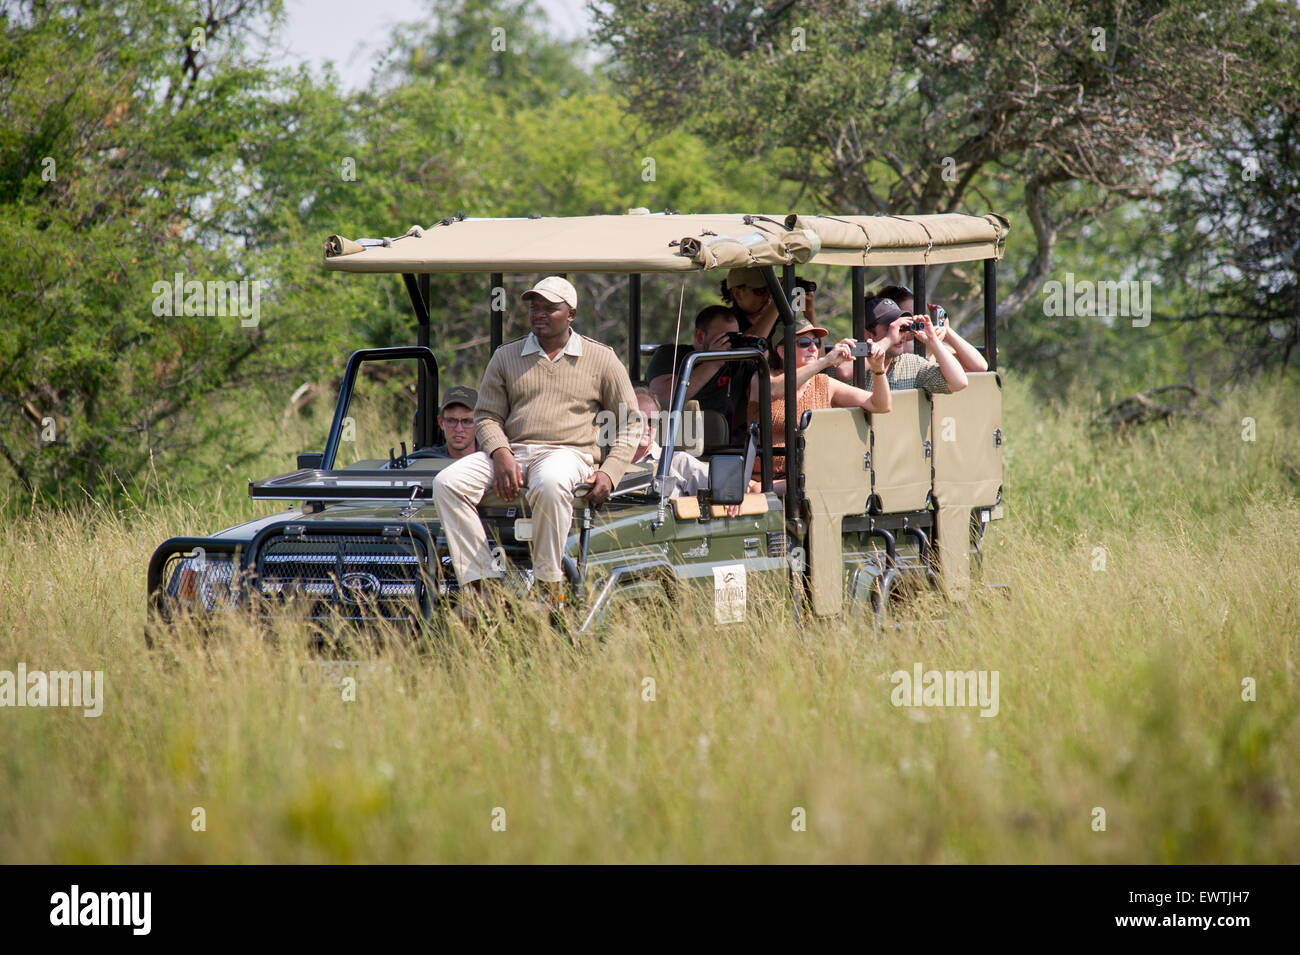 SOUTH AFRICA- Tourists on Safari in the Dinokeng Game Reserve - Stock Image